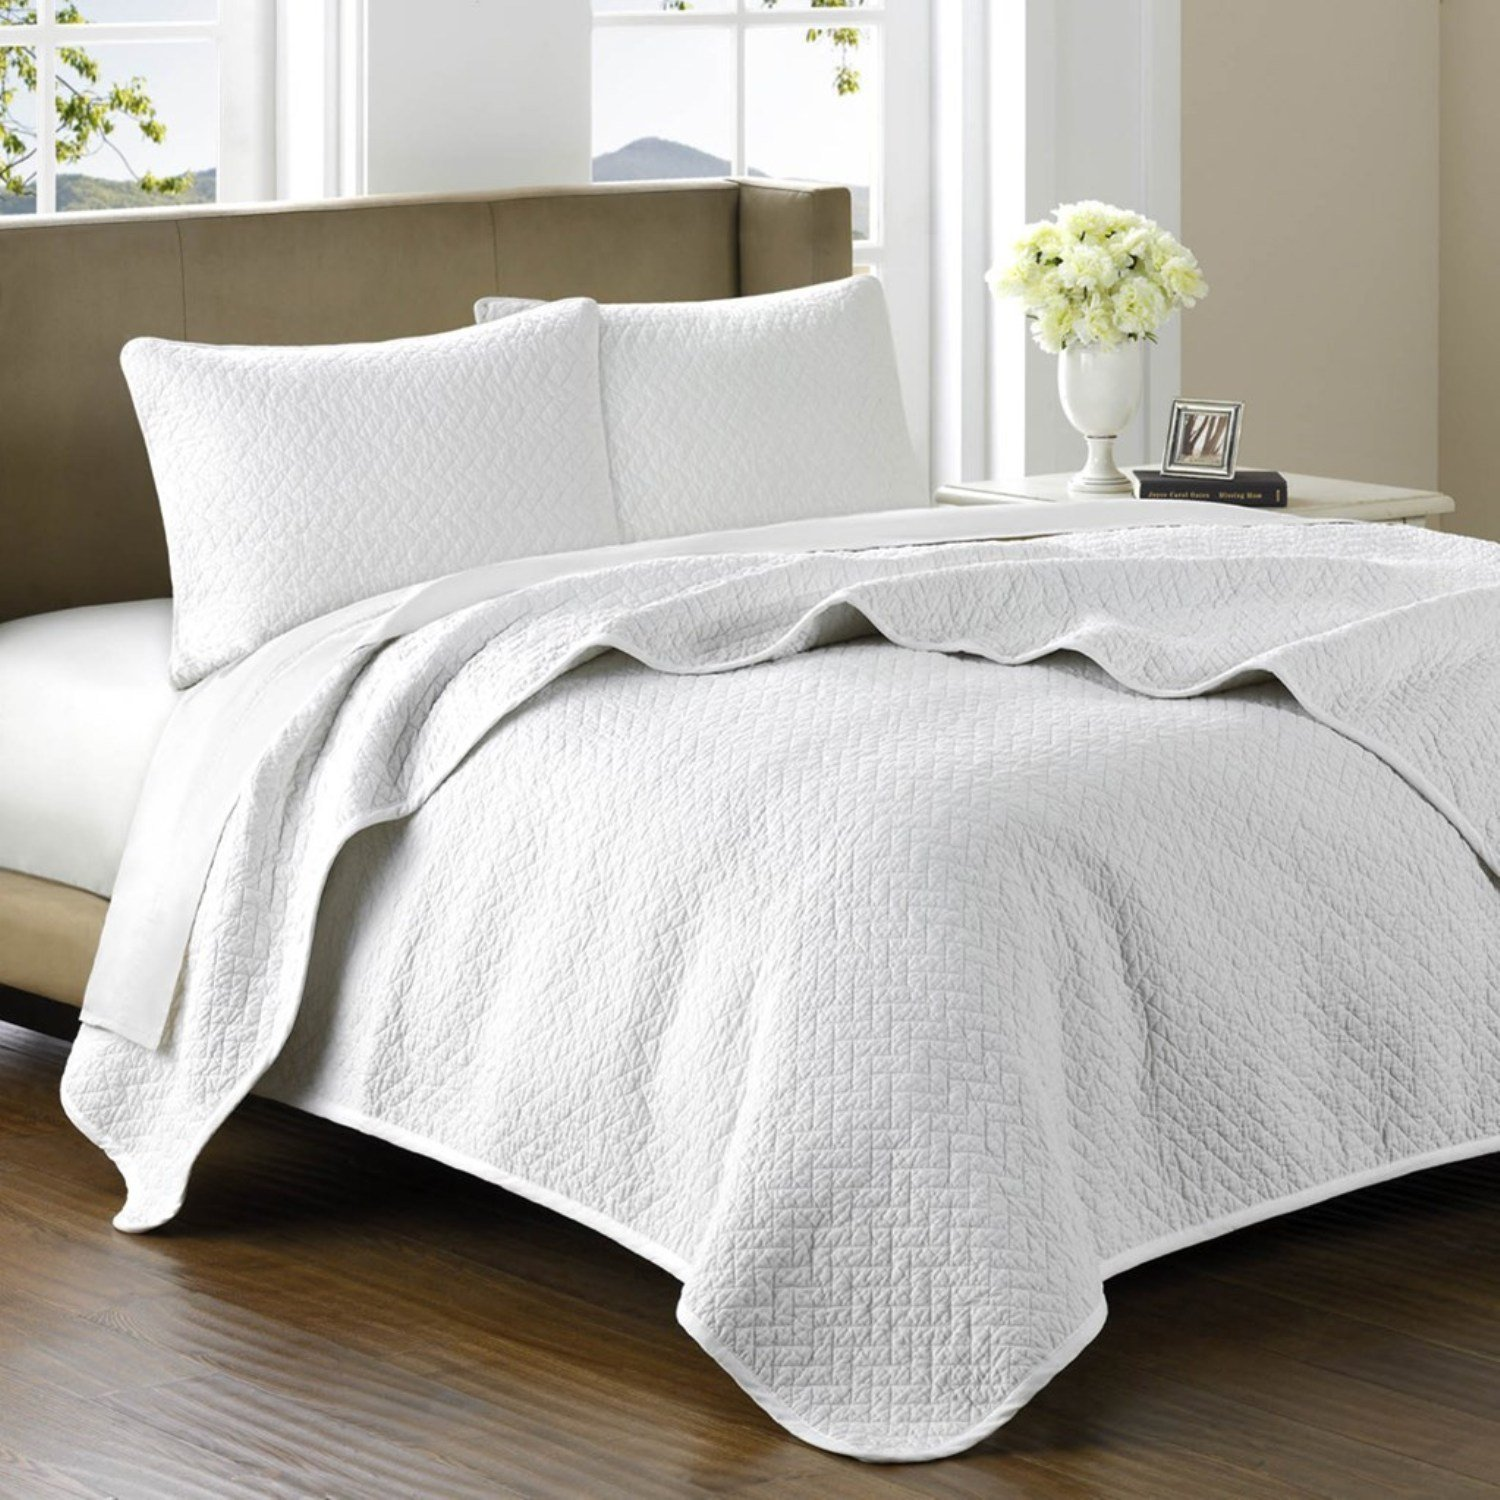 amazoncom hampton hill bellville cotton quilted coverlet set king whitehome  kitchen. amazoncom hampton hill bellville cotton quilted coverlet set